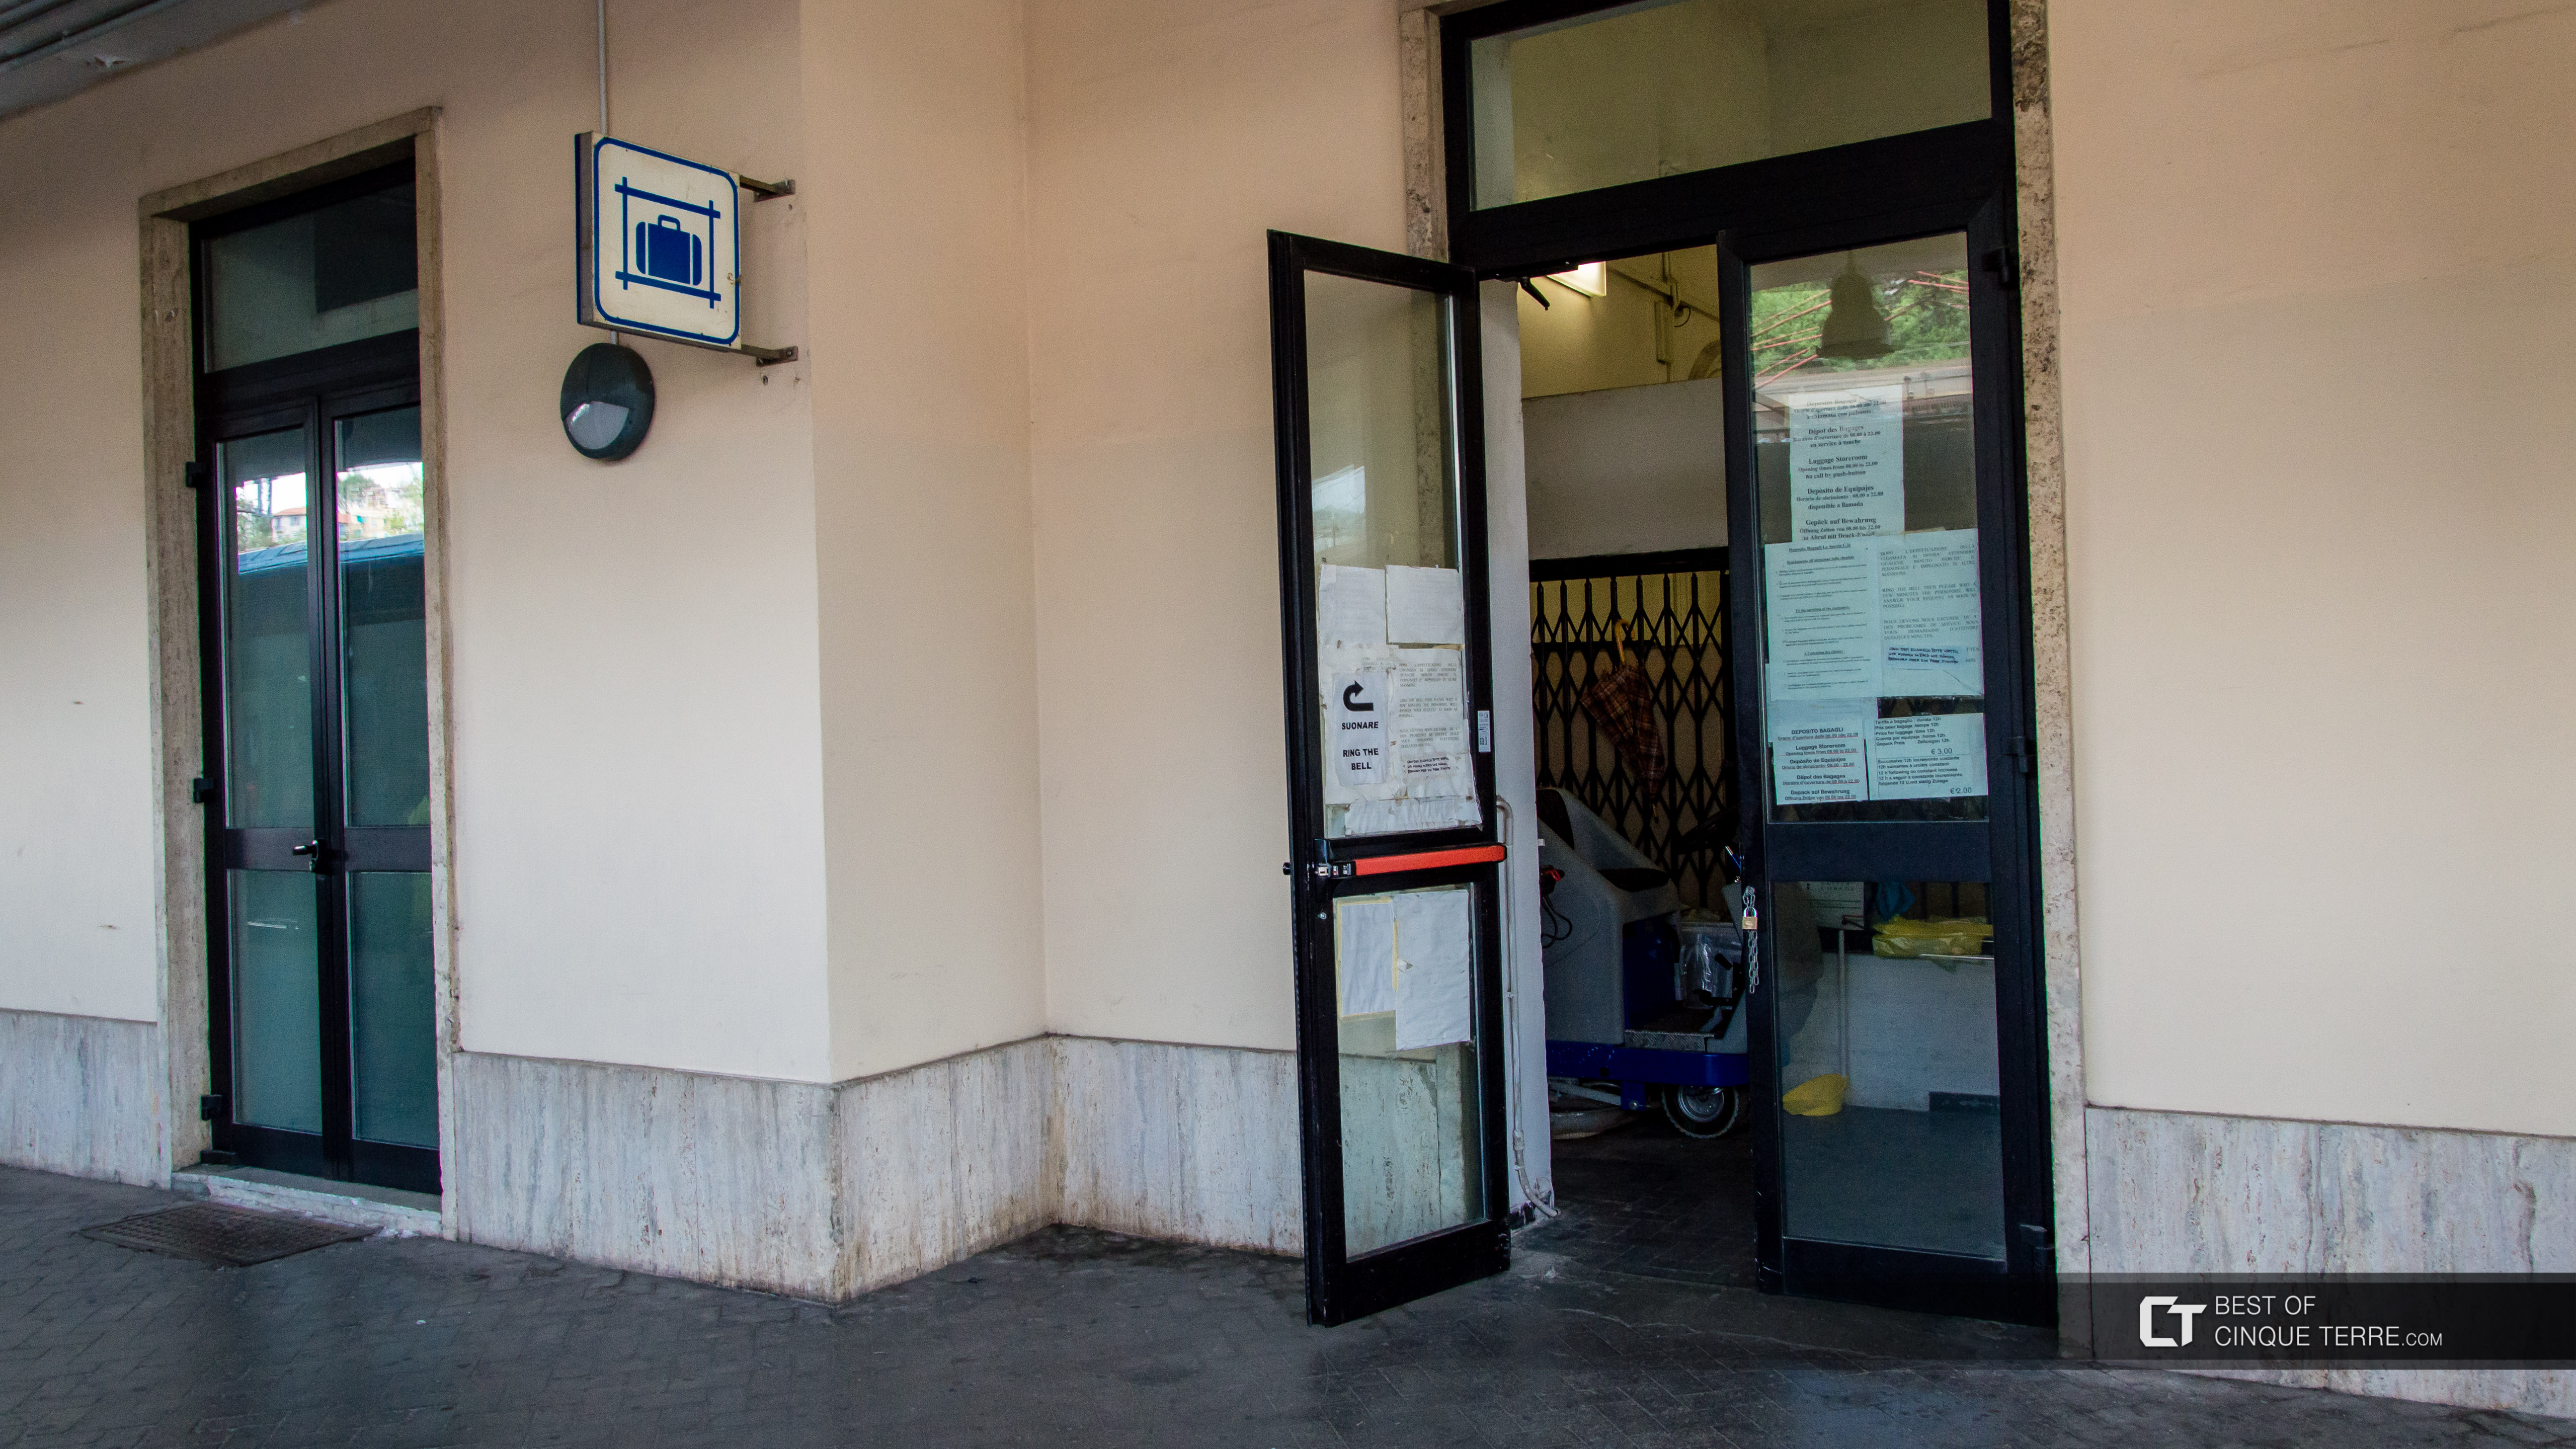 Luggage storage at La Spezia train station, Cinque Terre, Italy